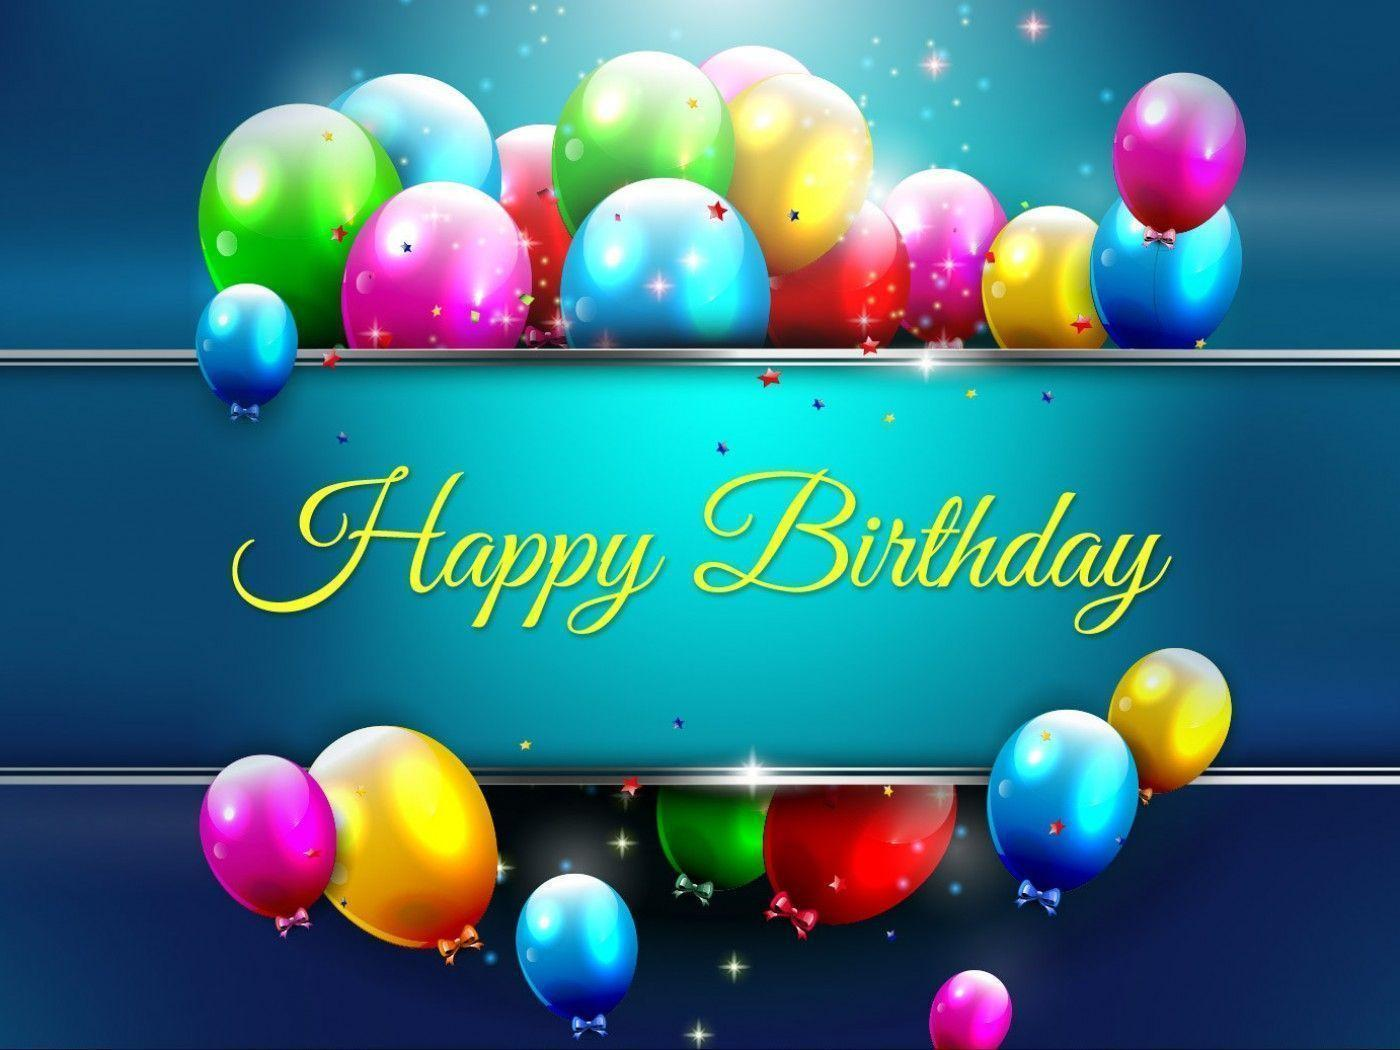 Happy Birthday Wallpapers With Name  Wallpaper Cave